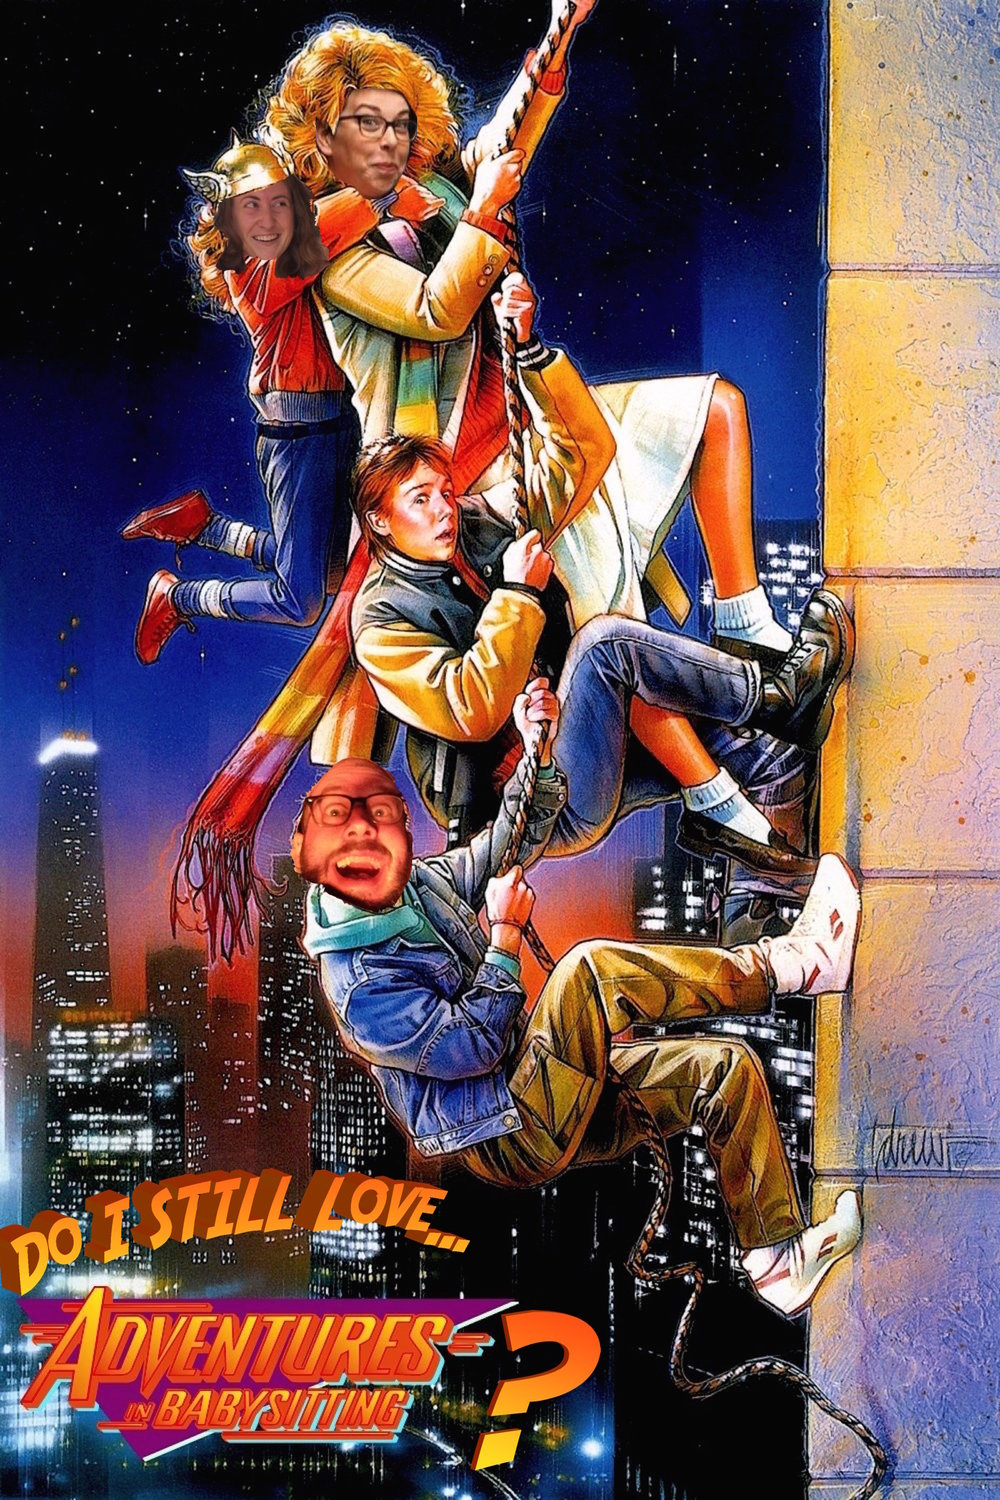 Do I Still Love Adventures in Babysitting